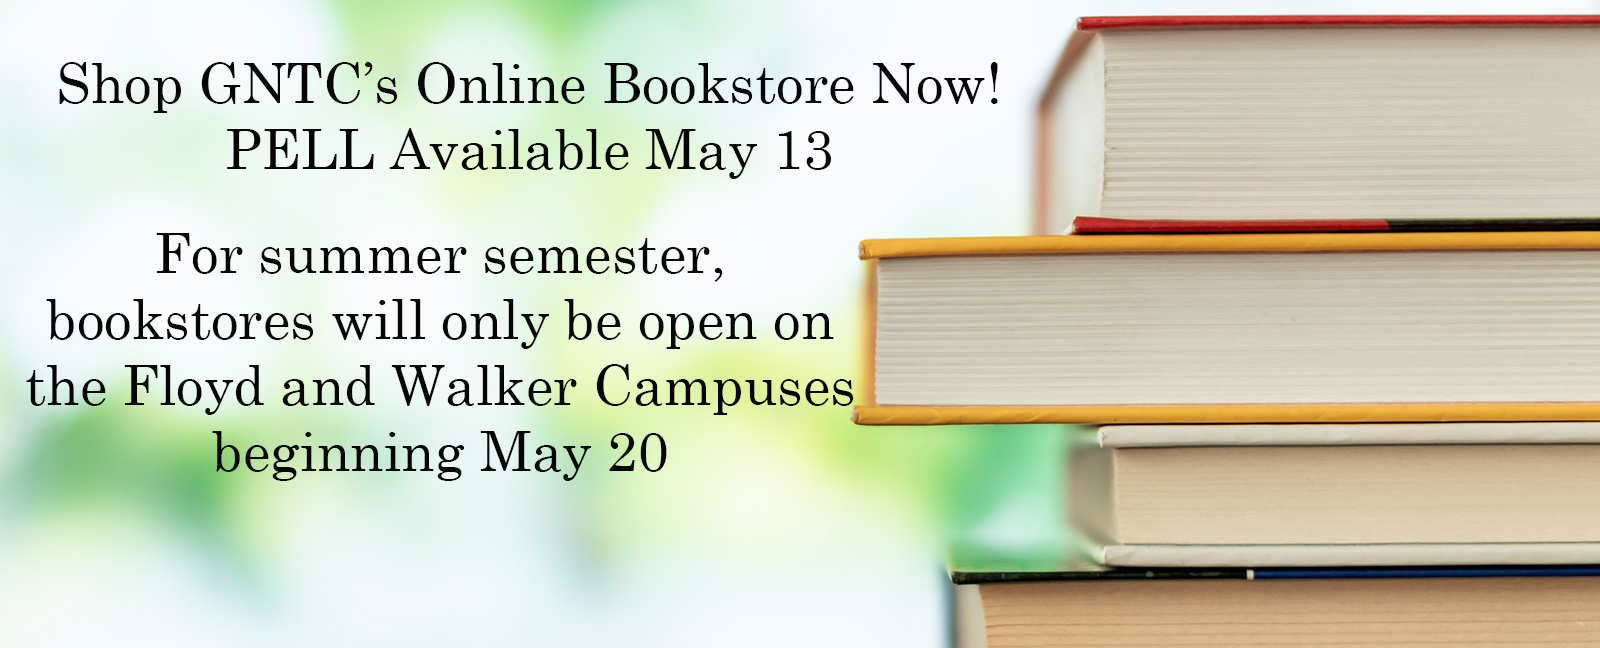 Shop GNTC's Online Bookstore Now! PELL Available May 13 